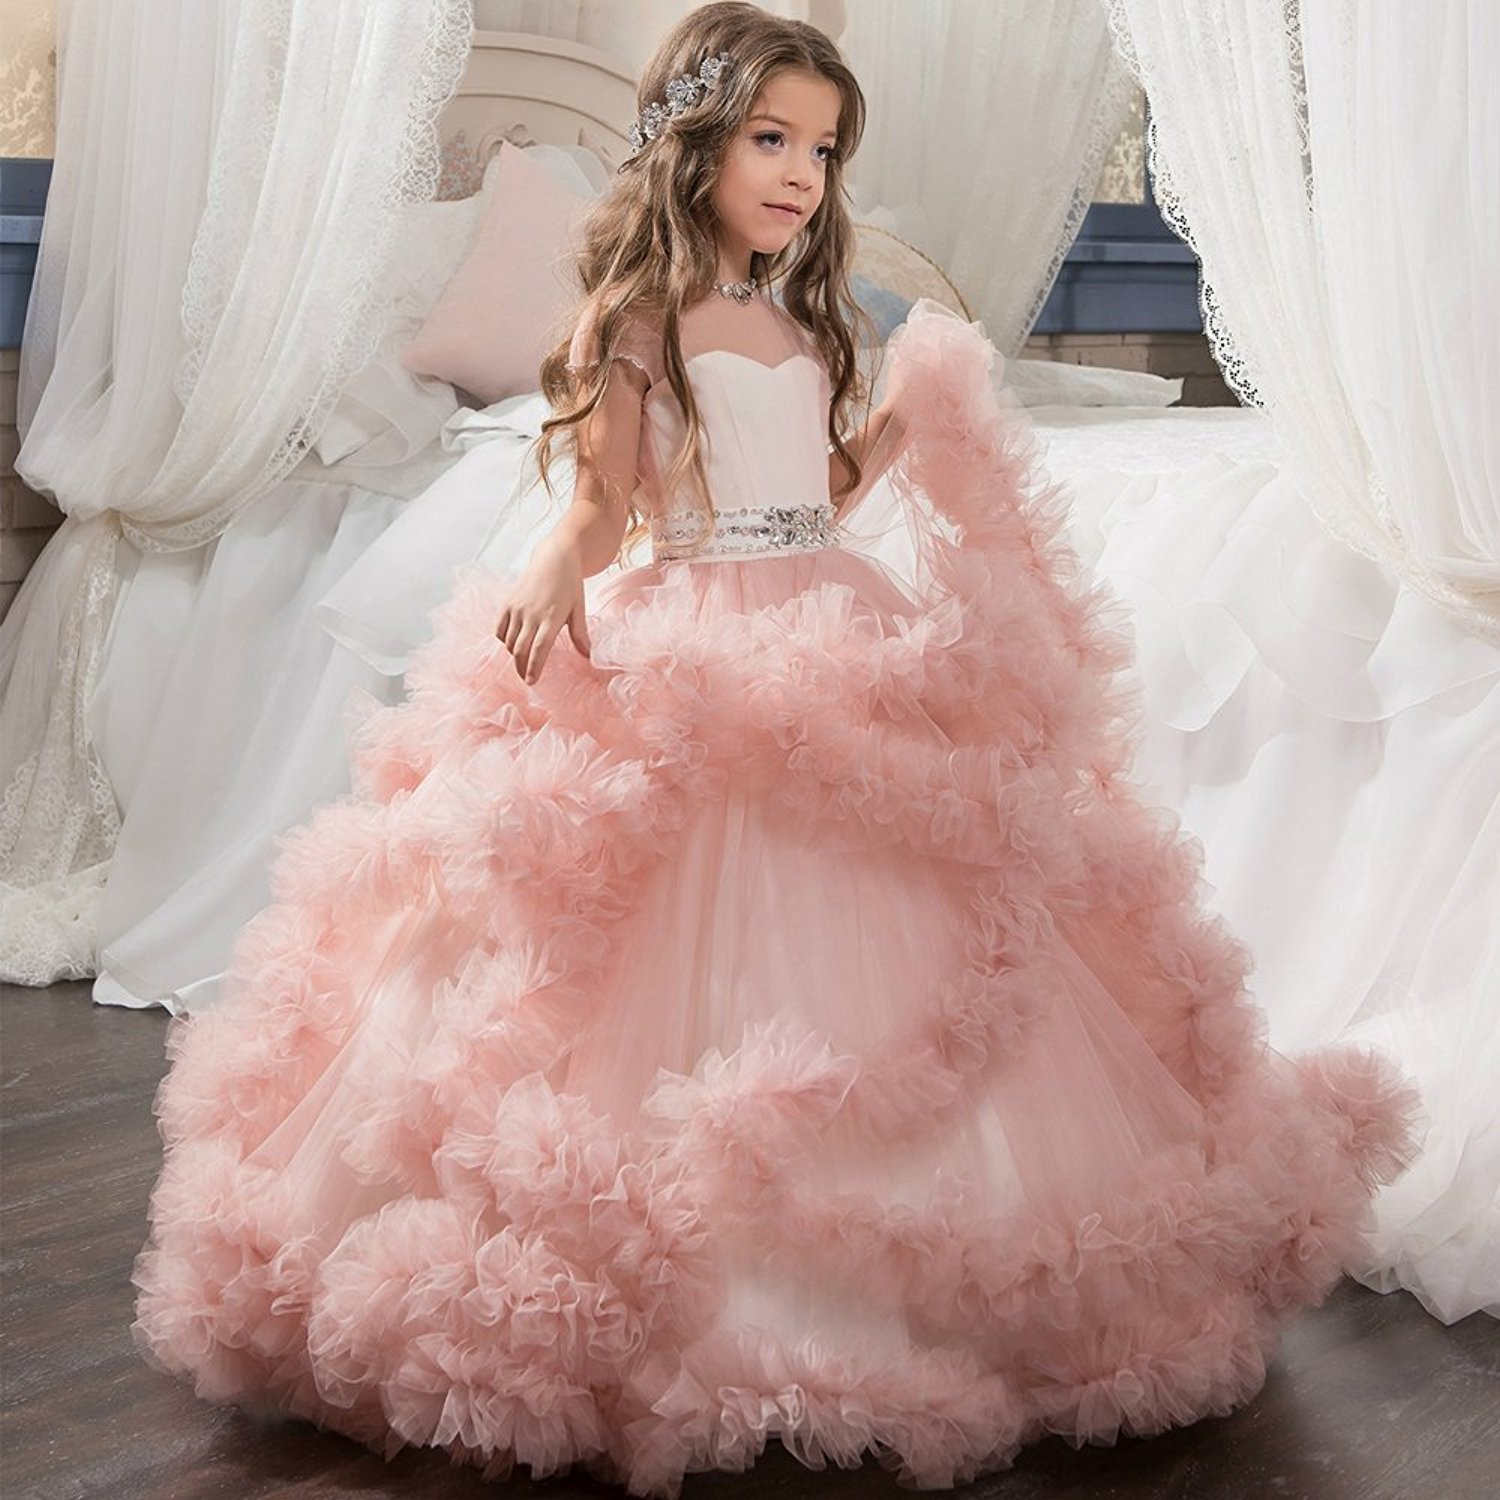 Teenage Girls Clothing 12 Years Dresses for Party and Wedding with Sleeves Flower Girl Dresses for Weddings Fall Big  Gown Ys_ frank buytendijk dealing with dilemmas where business analytics fall short